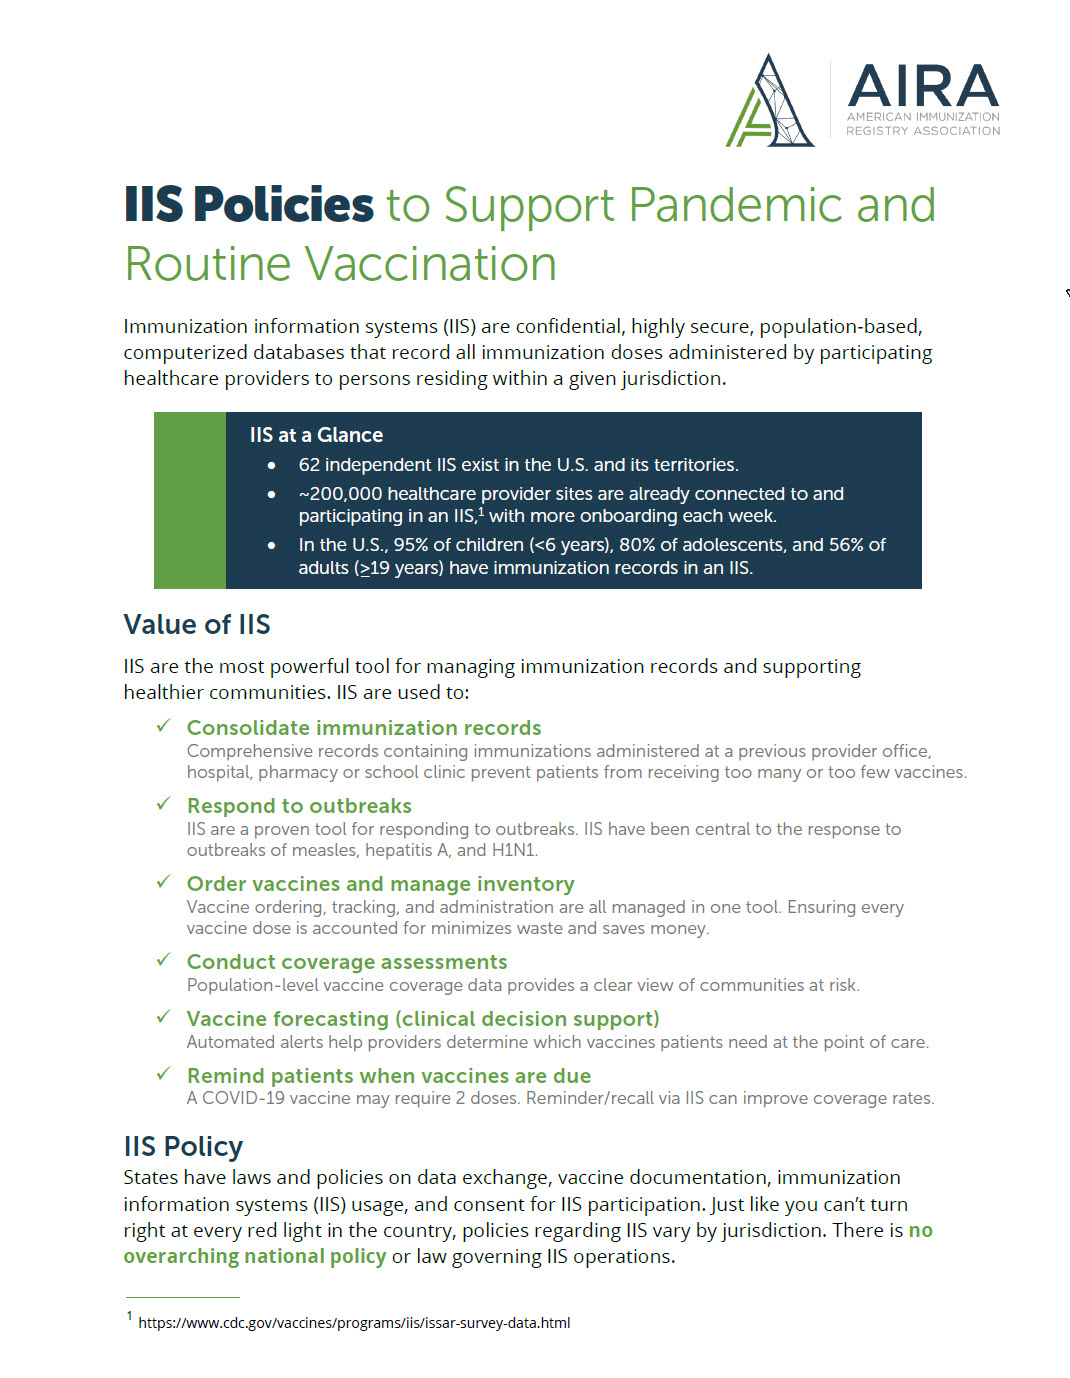 IIS Policies to Support Pandemic and Routine Vaccination One-Sheet